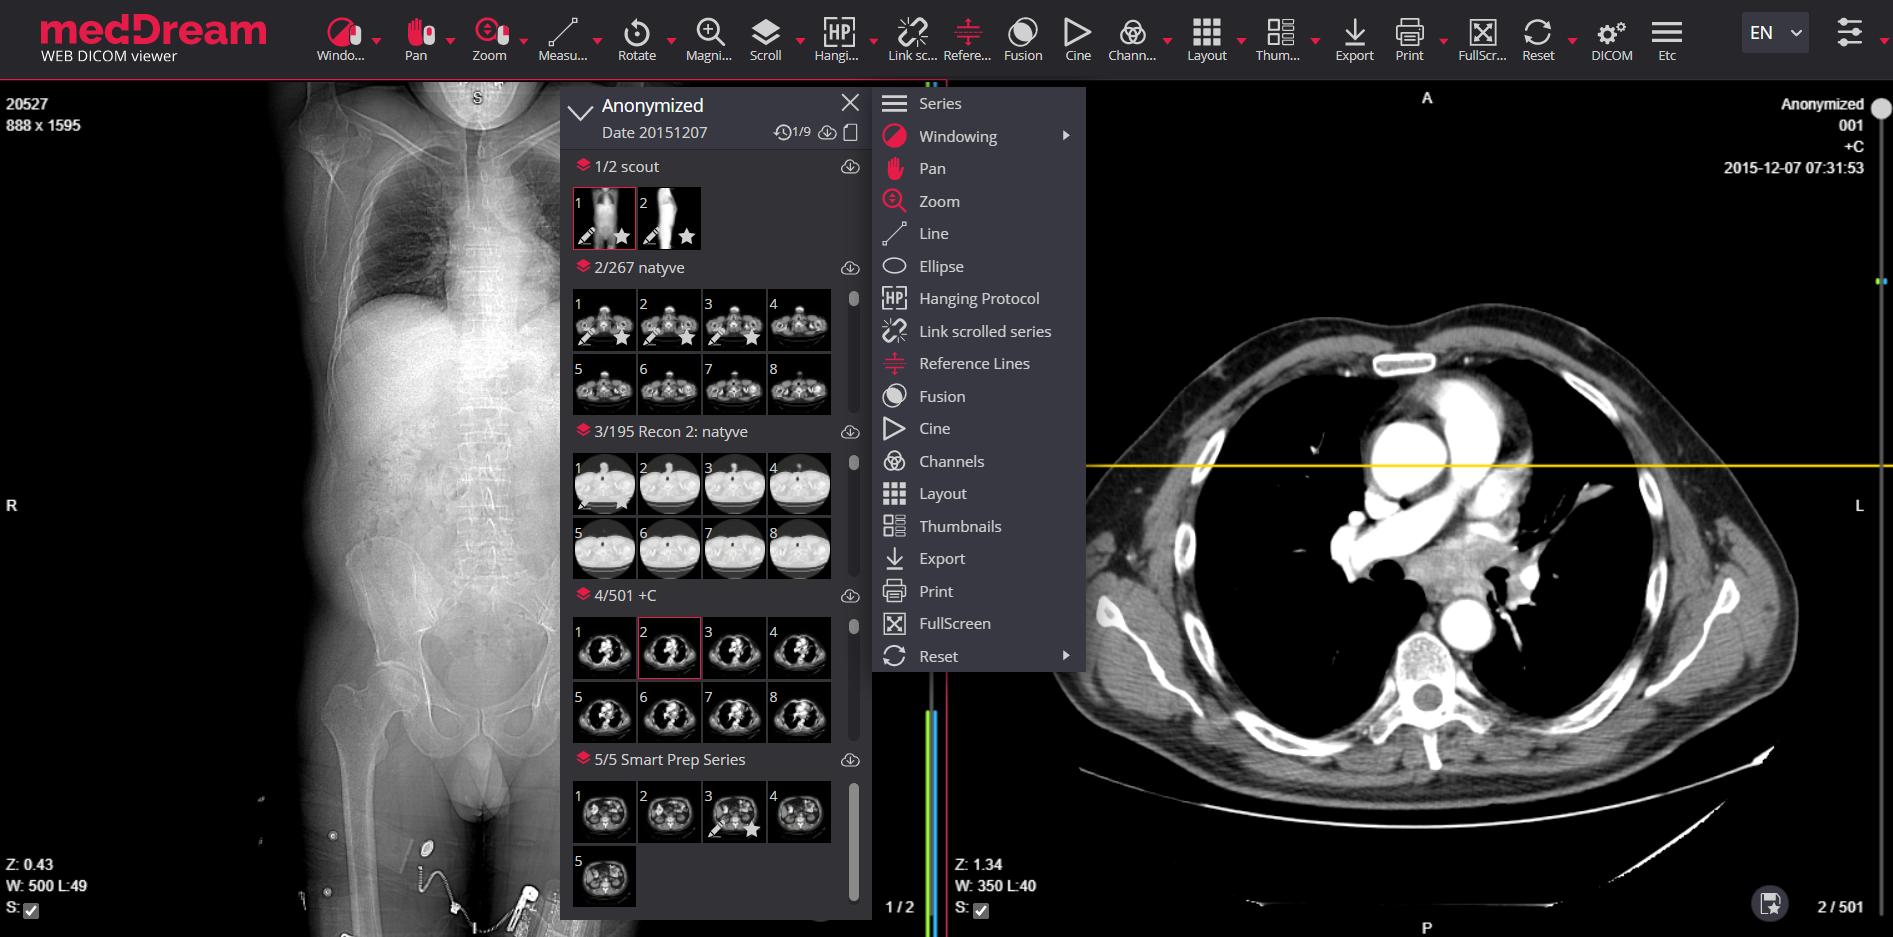 Meddream Dicom Viewer Quick Menu Thumbnails